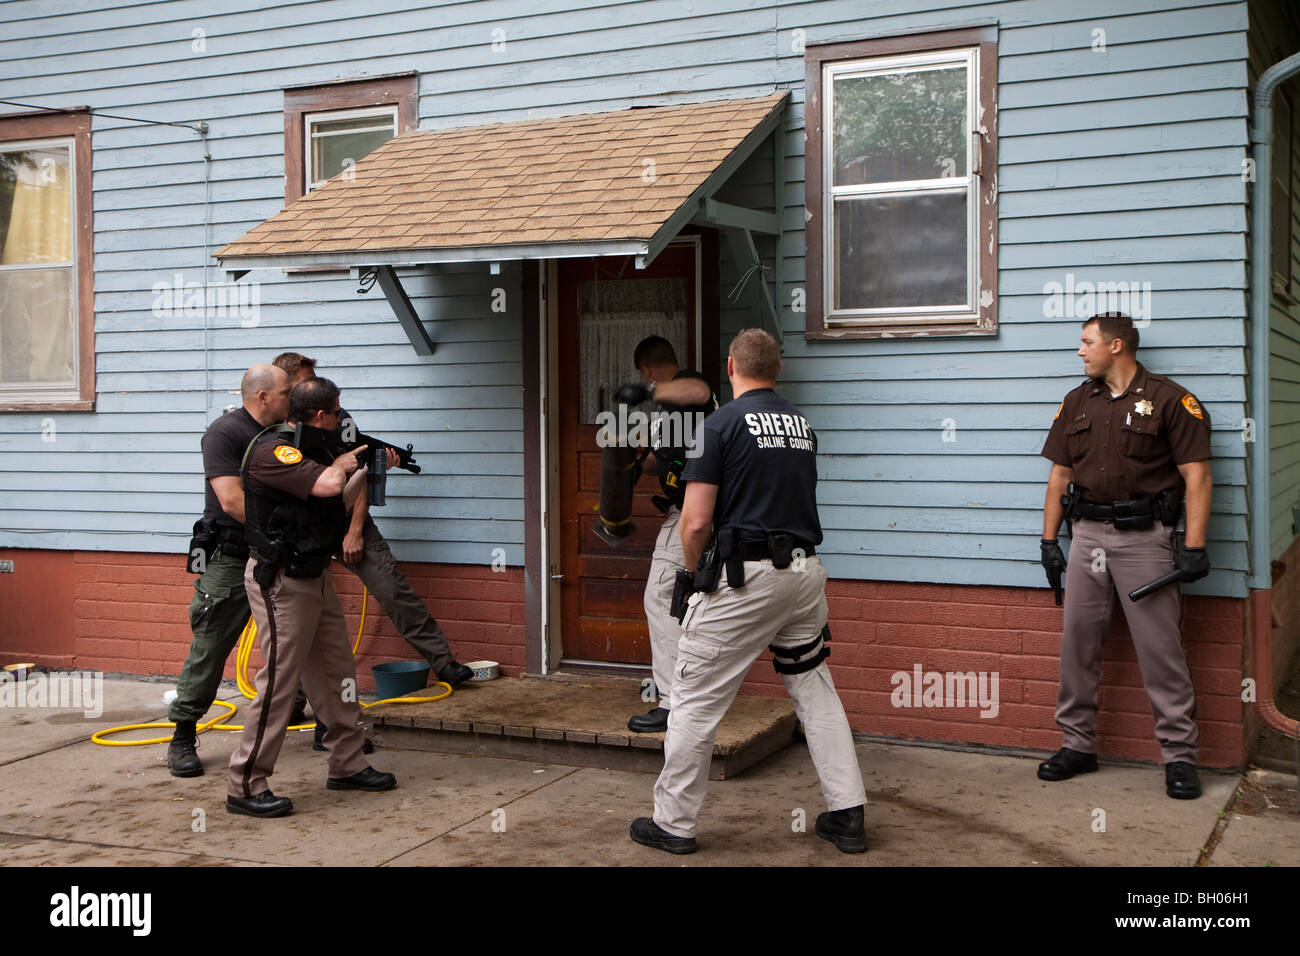 Drug Search Warrant Stock Photos & Drug Search Warrant